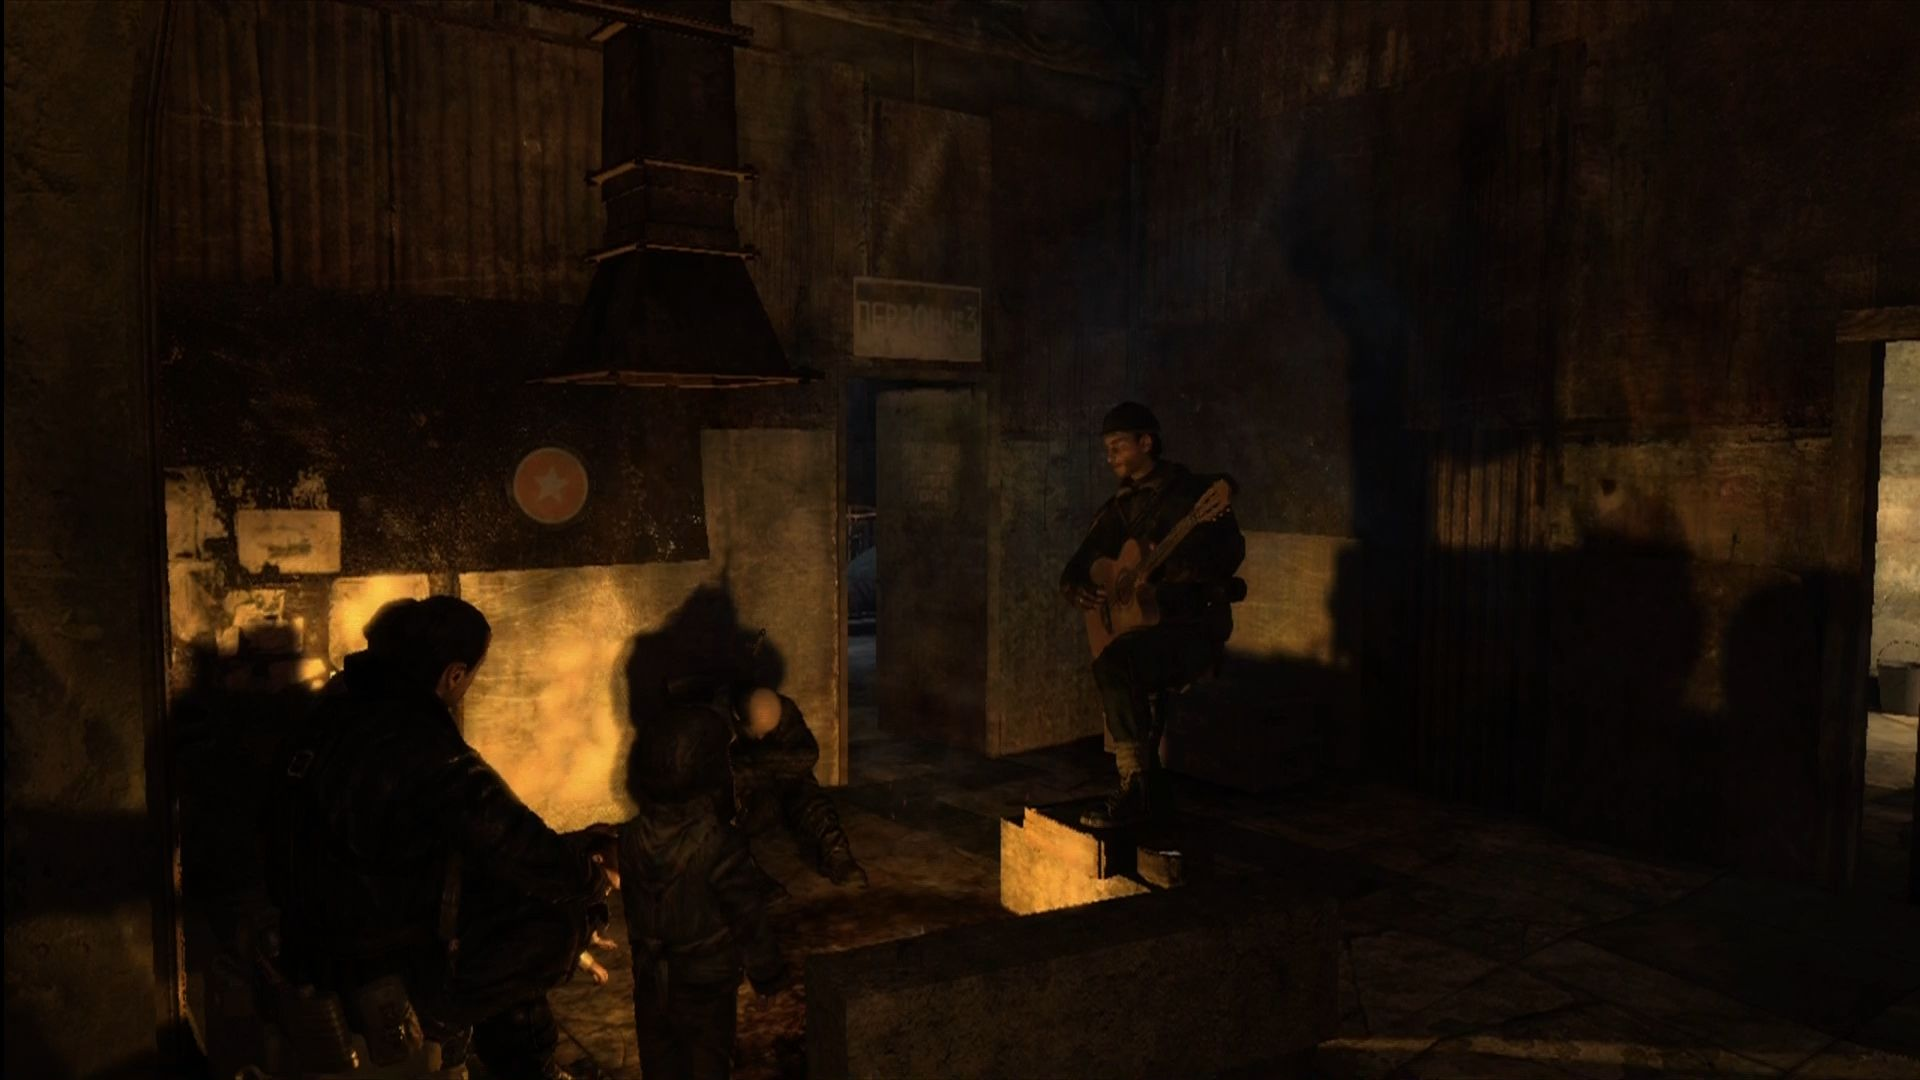 Metro 2033 Xbox 360 Good to see the STALKER guitarists found work.